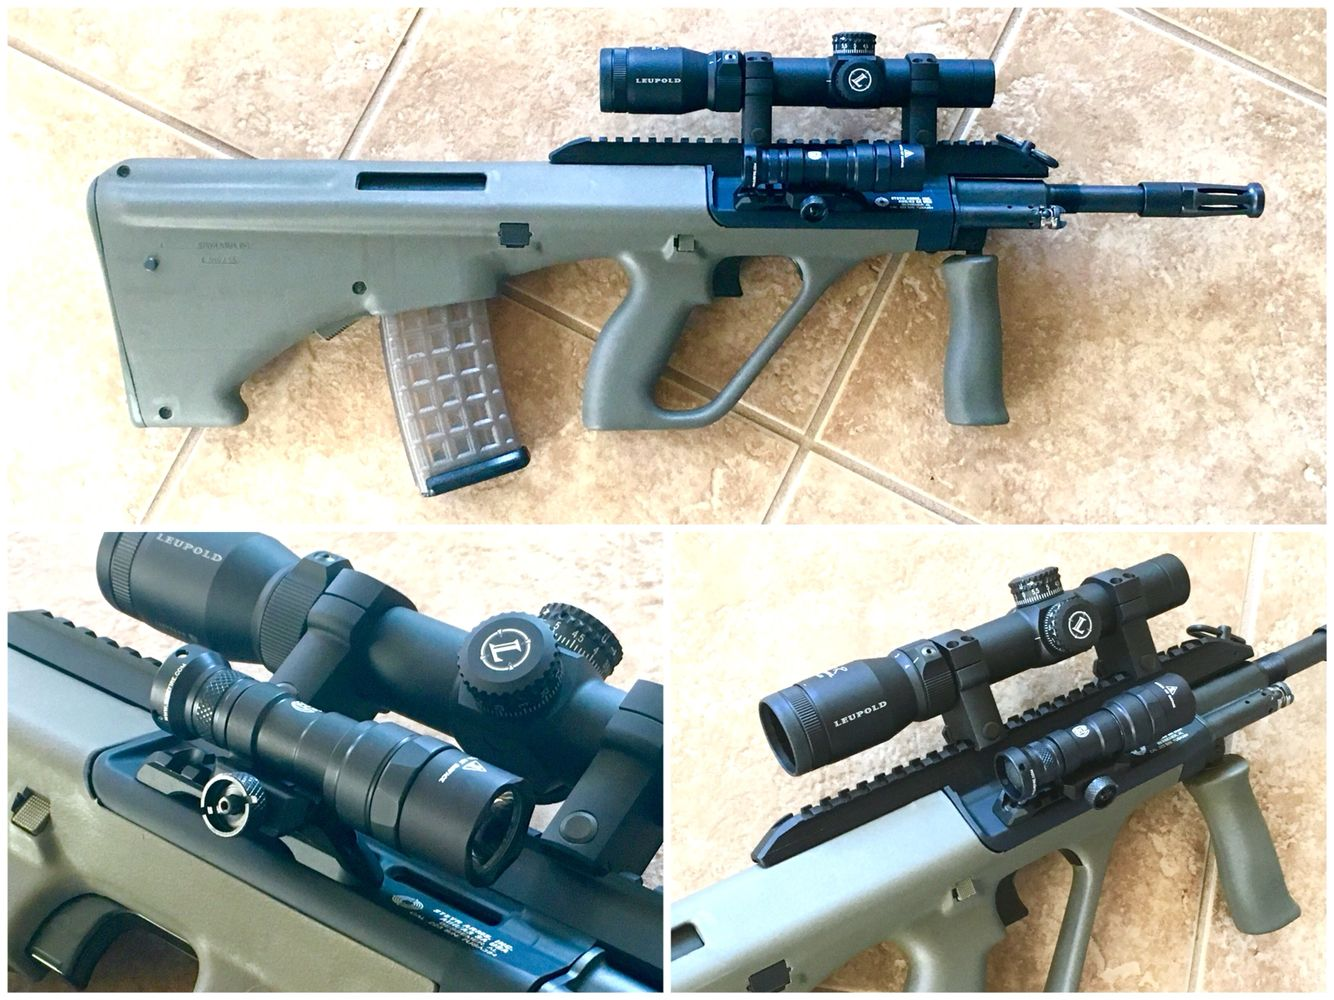 Steyr AUG A3 in OD Green, with Leupold VX 1.25-4x patrol scope and Surefire M300 mini scout light